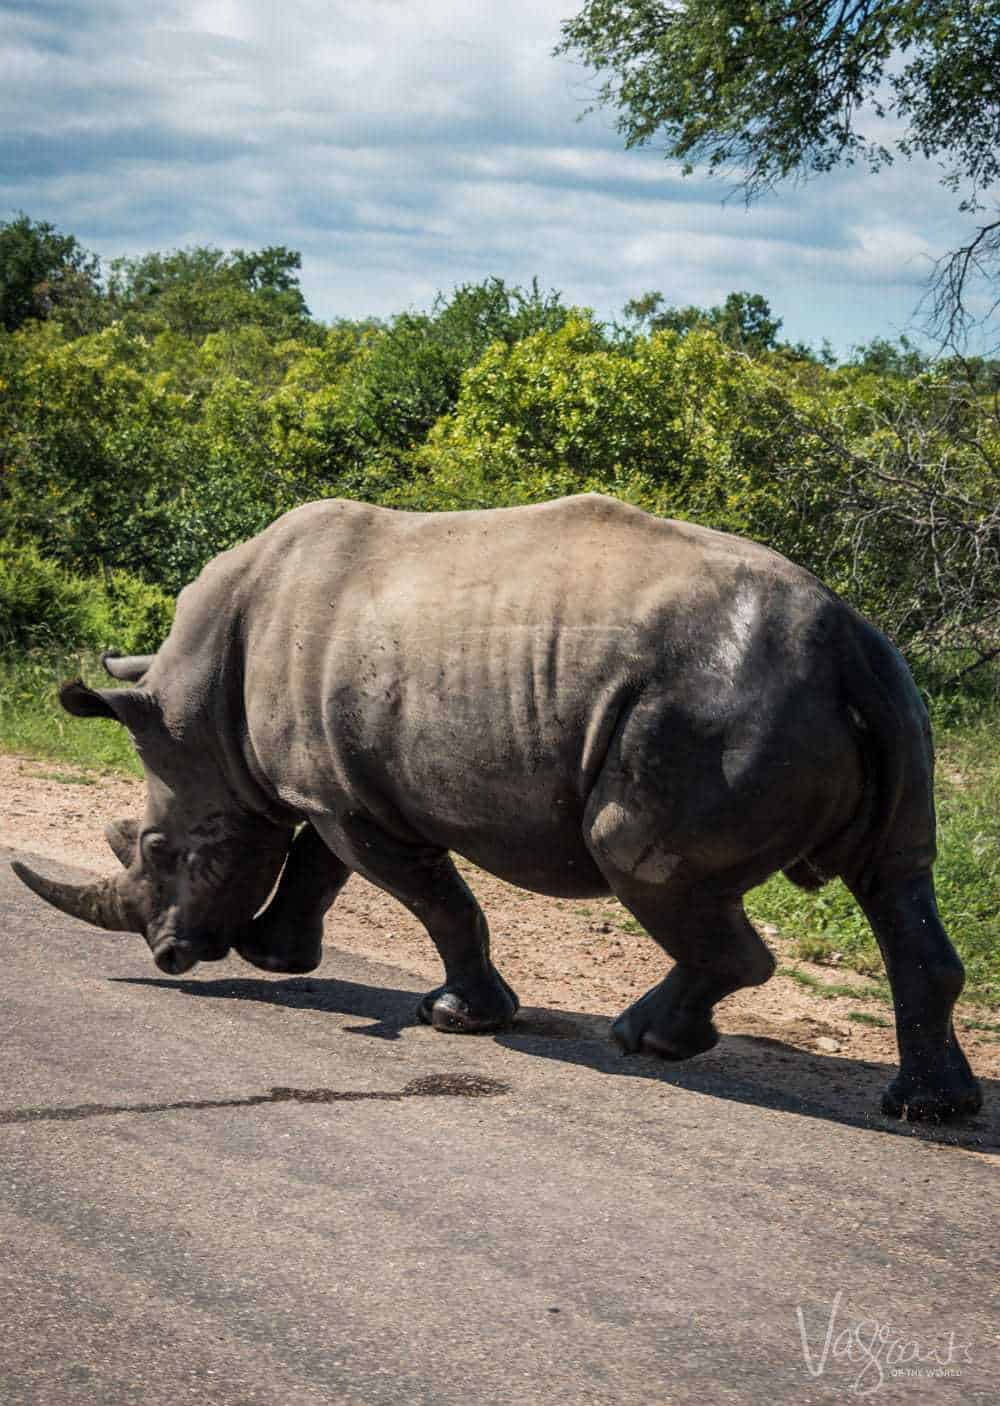 A full day private safari is a great way to experience Kruger National Park